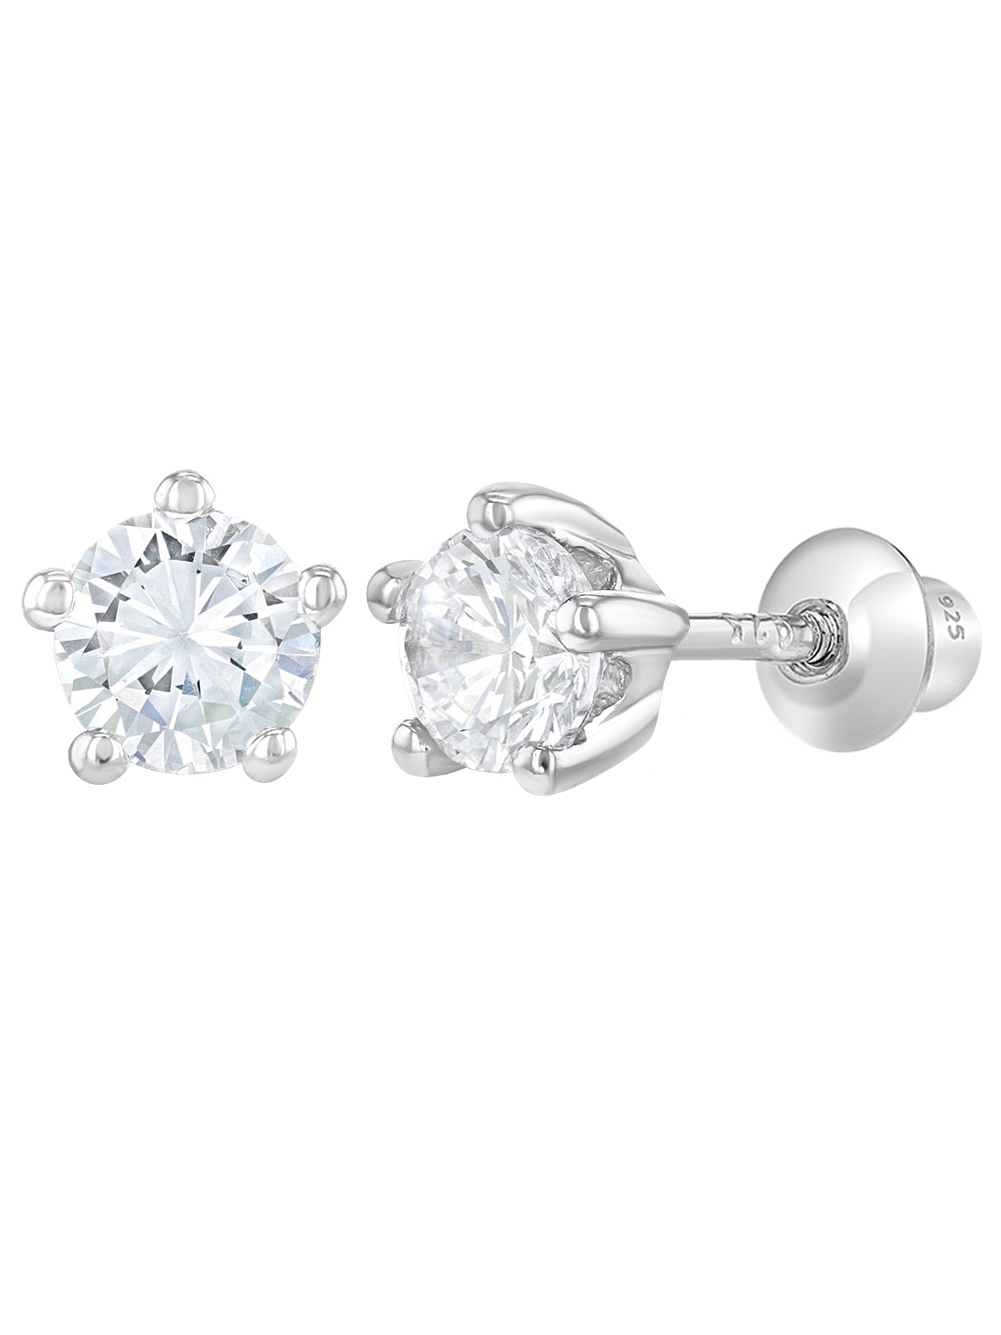 In Season Jewelry 925 Sterling Silver Baby Girls Kids Screw Back Earrings Prong Set CZ 4mm